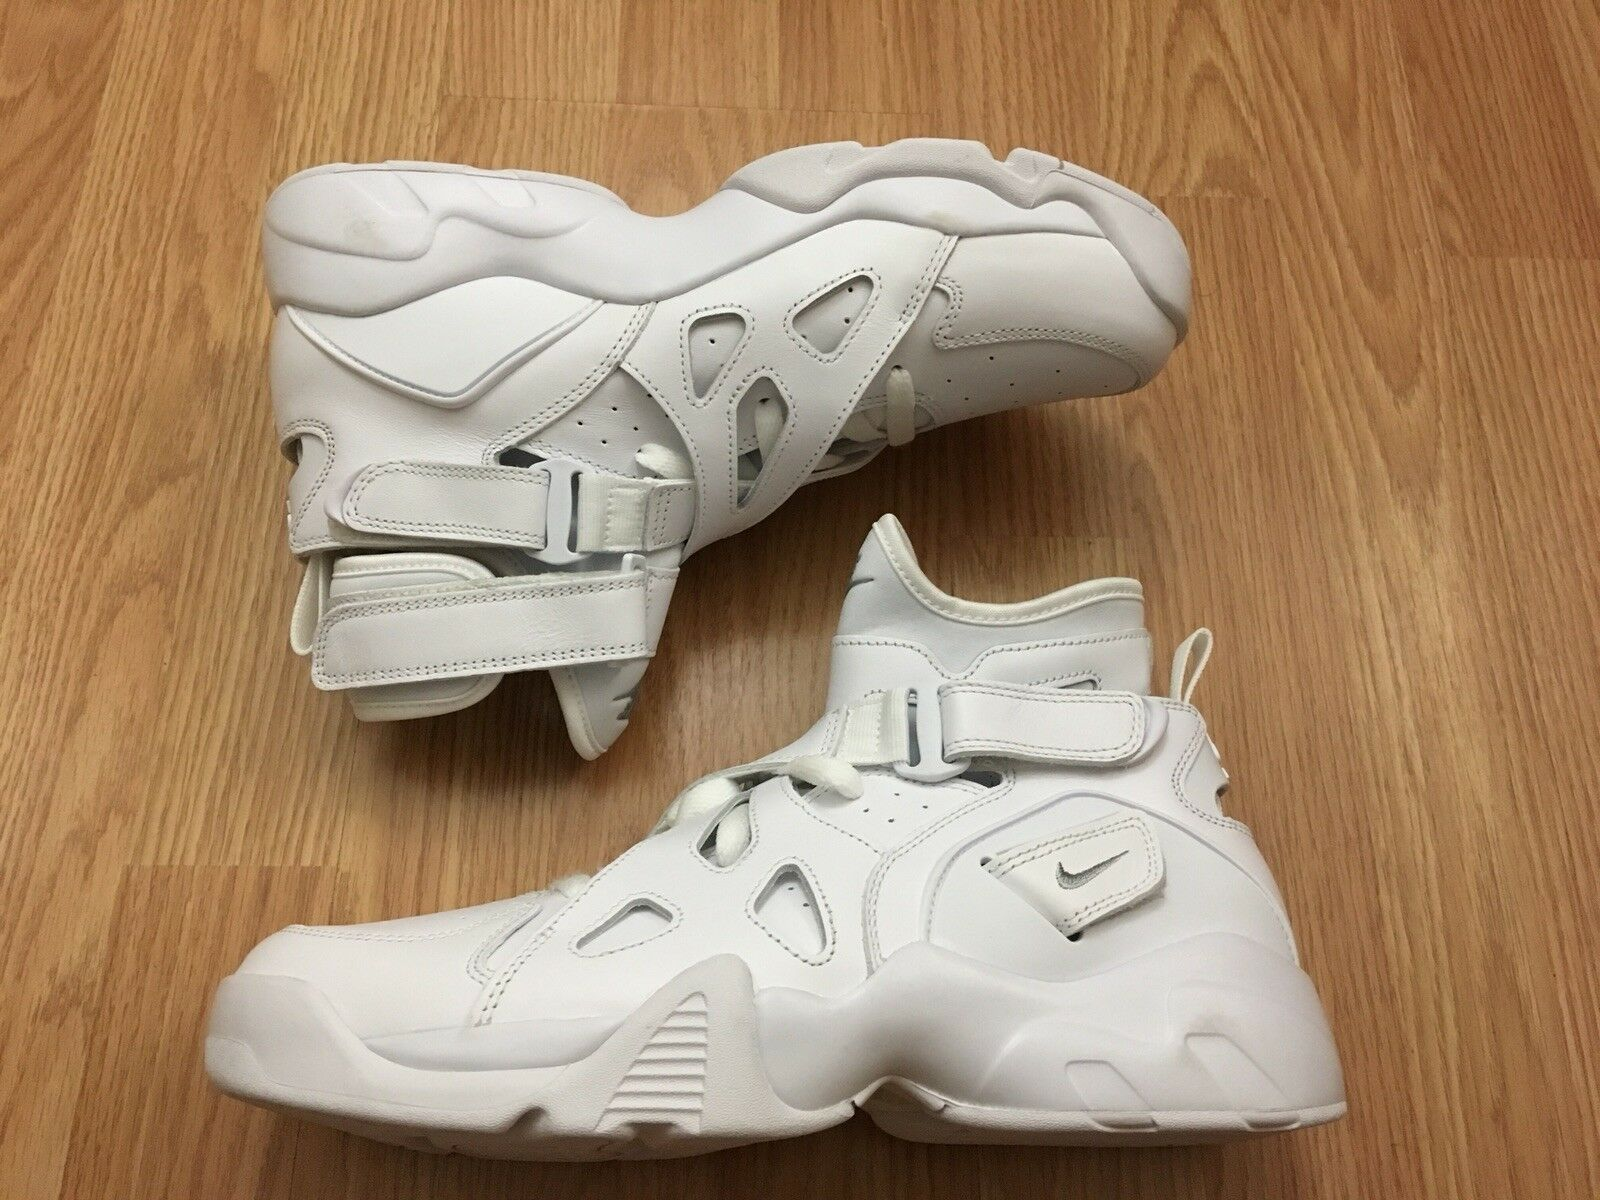 online retailer a636c ee9a9 NIKE AIR UNLIMITED SIZE 9 MEN WHITE WHITE WHITE SNEAKER SHOE BASKETBALL  LIFESTYLE a79d6e